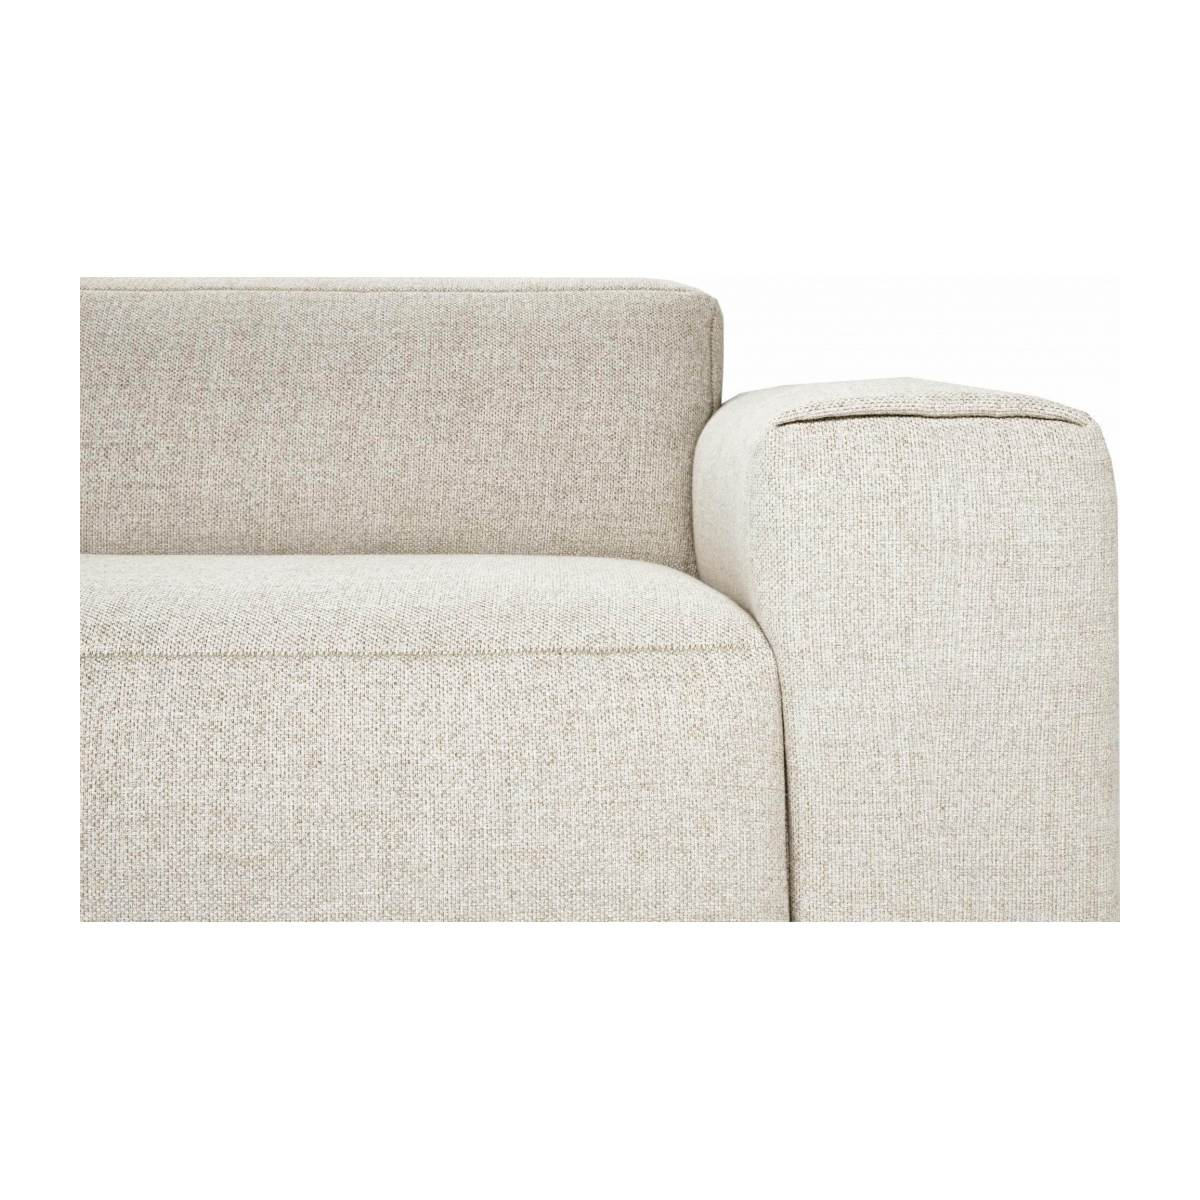 3 seater sofa in Lecce fabric, nature n°4